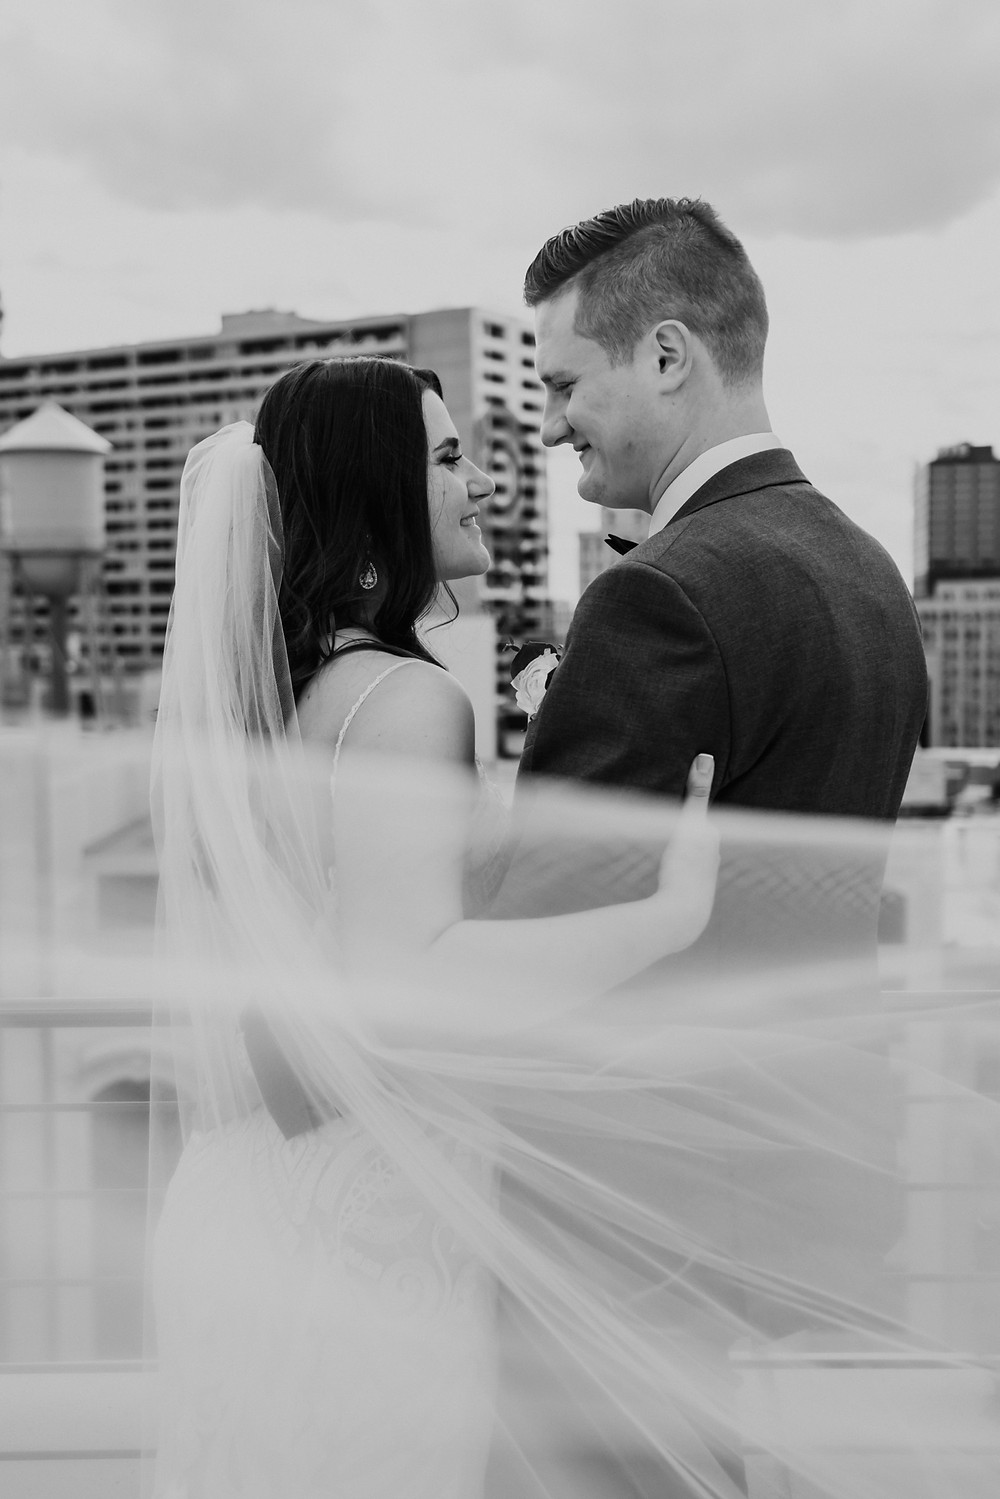 Bride and groom wedding day photos in Detroit. Photographed by Nicole Leanne Photography.